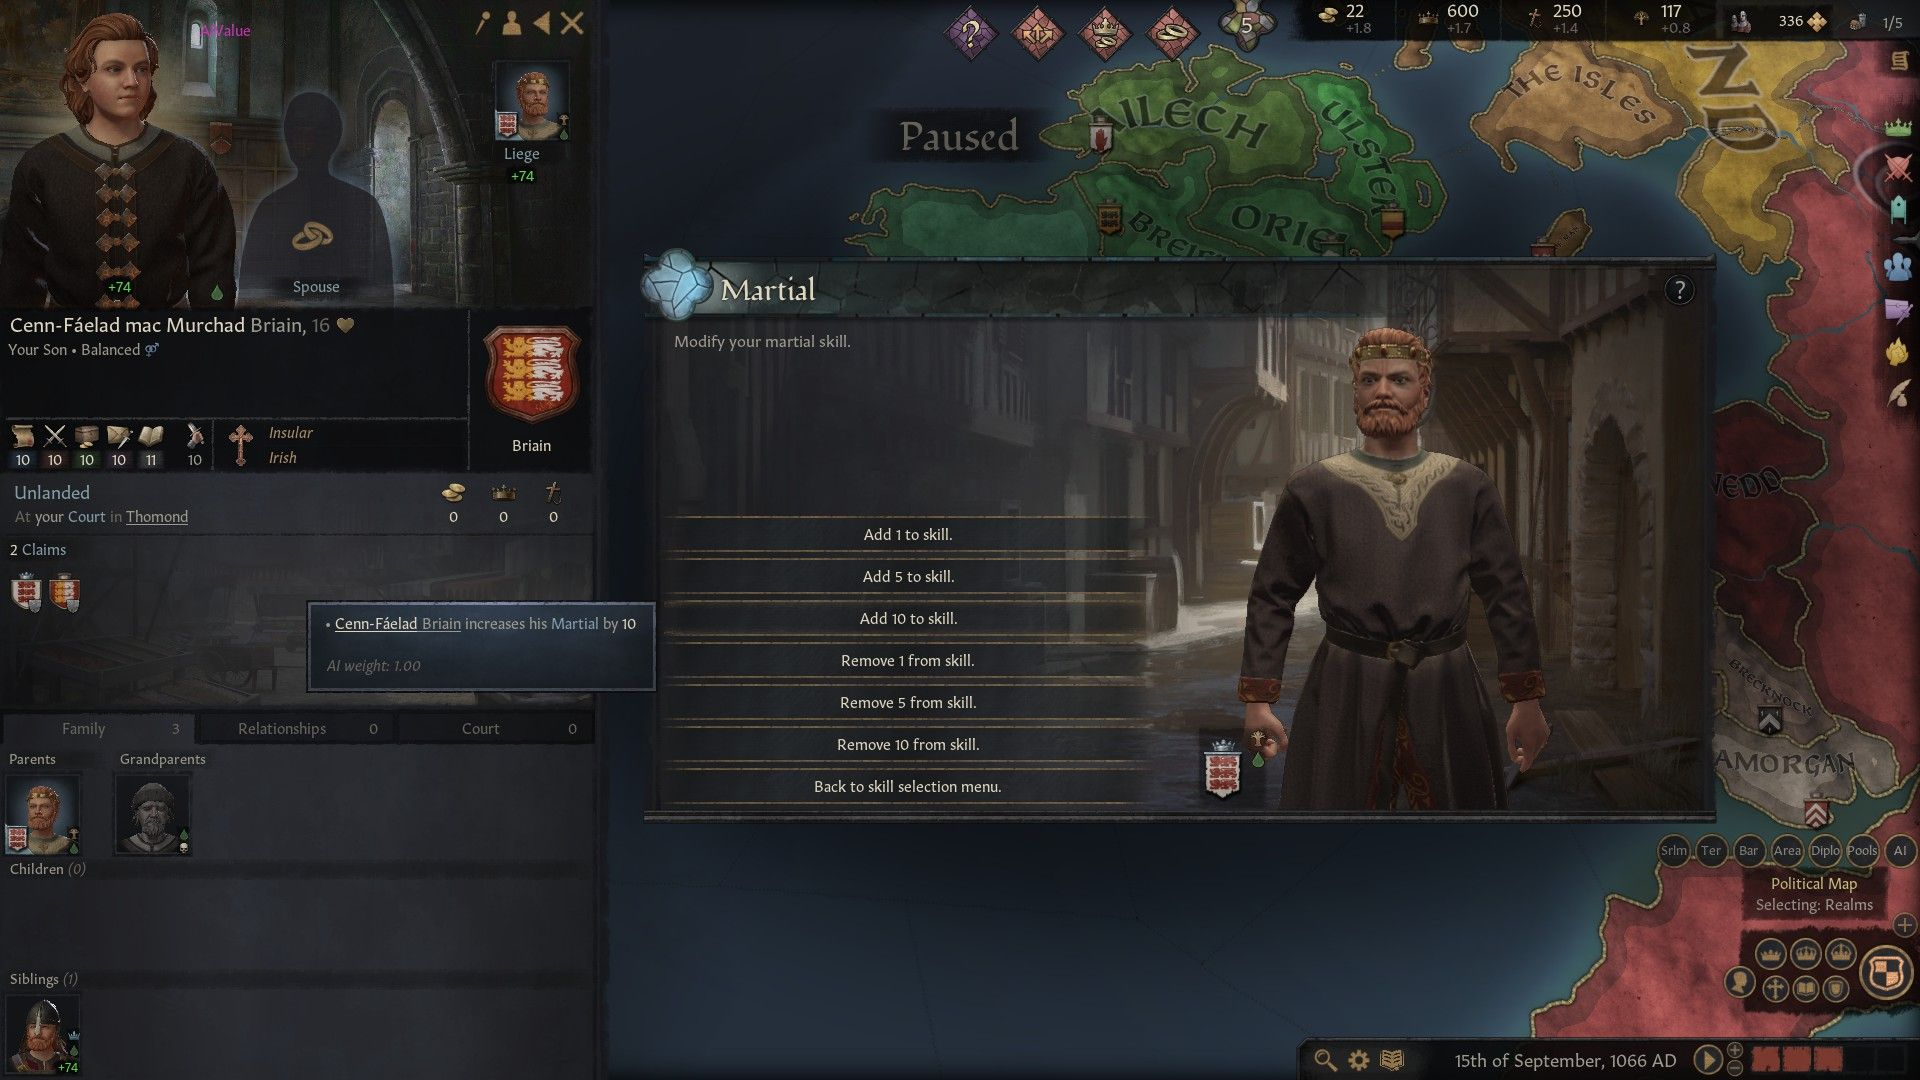 A Crusader Kings 3 screenshot, showing a newly created character and a menu